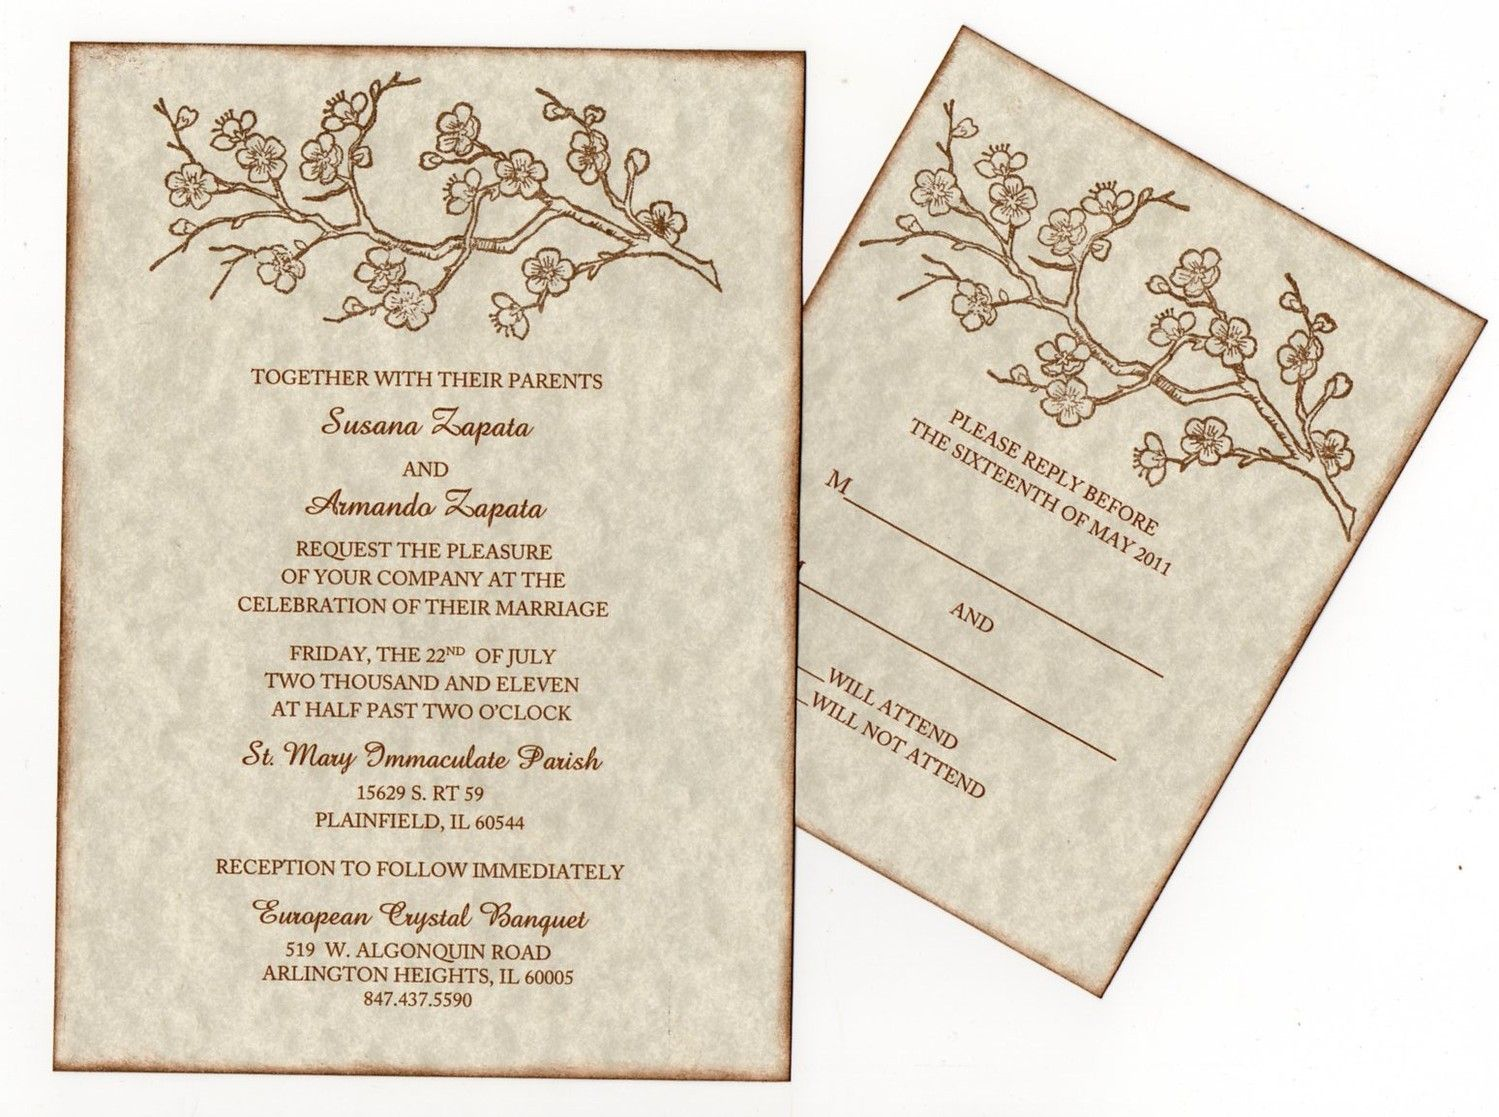 Wedding Invitation Card Sample: Wedding Invitation Wording: Indian Wedding Invitation